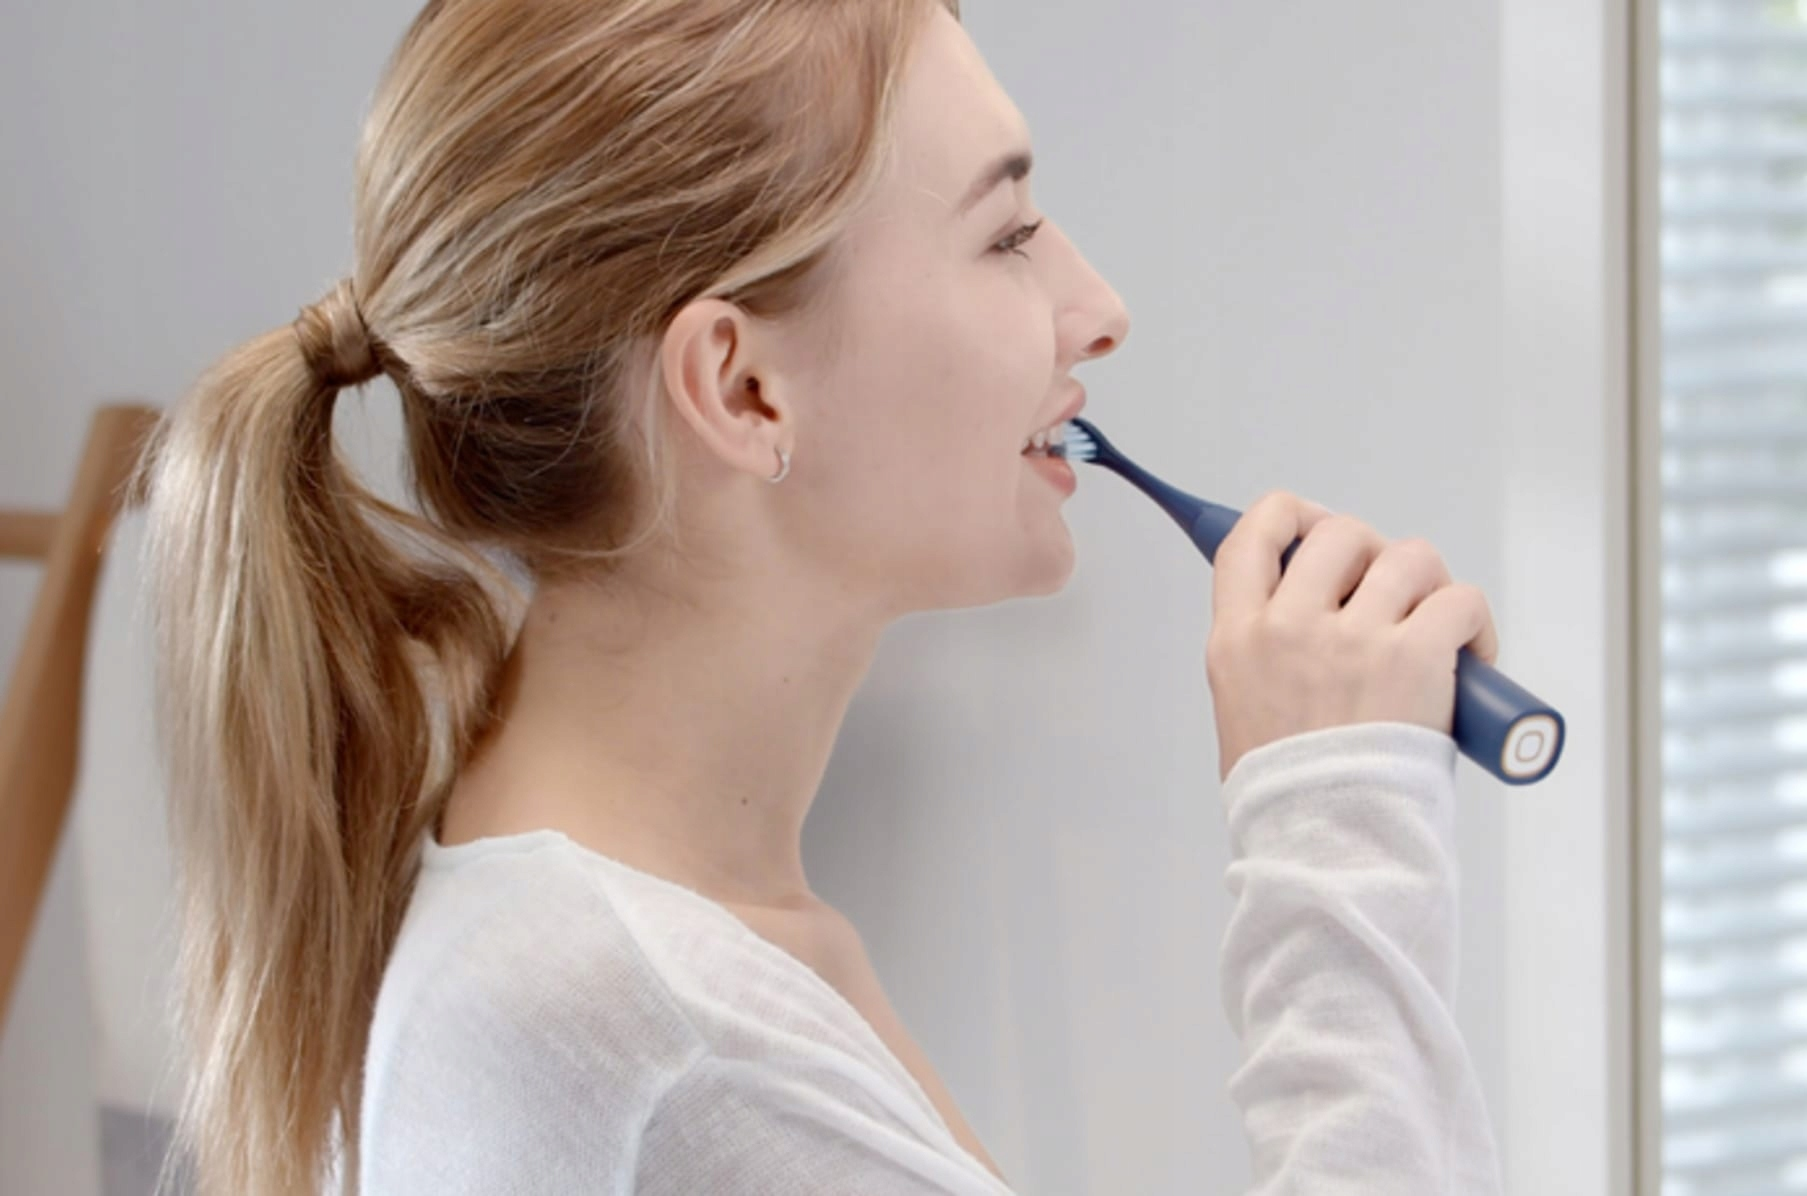 SonicX PRO Toothbrush: Clean Your Teeth the Right Way!